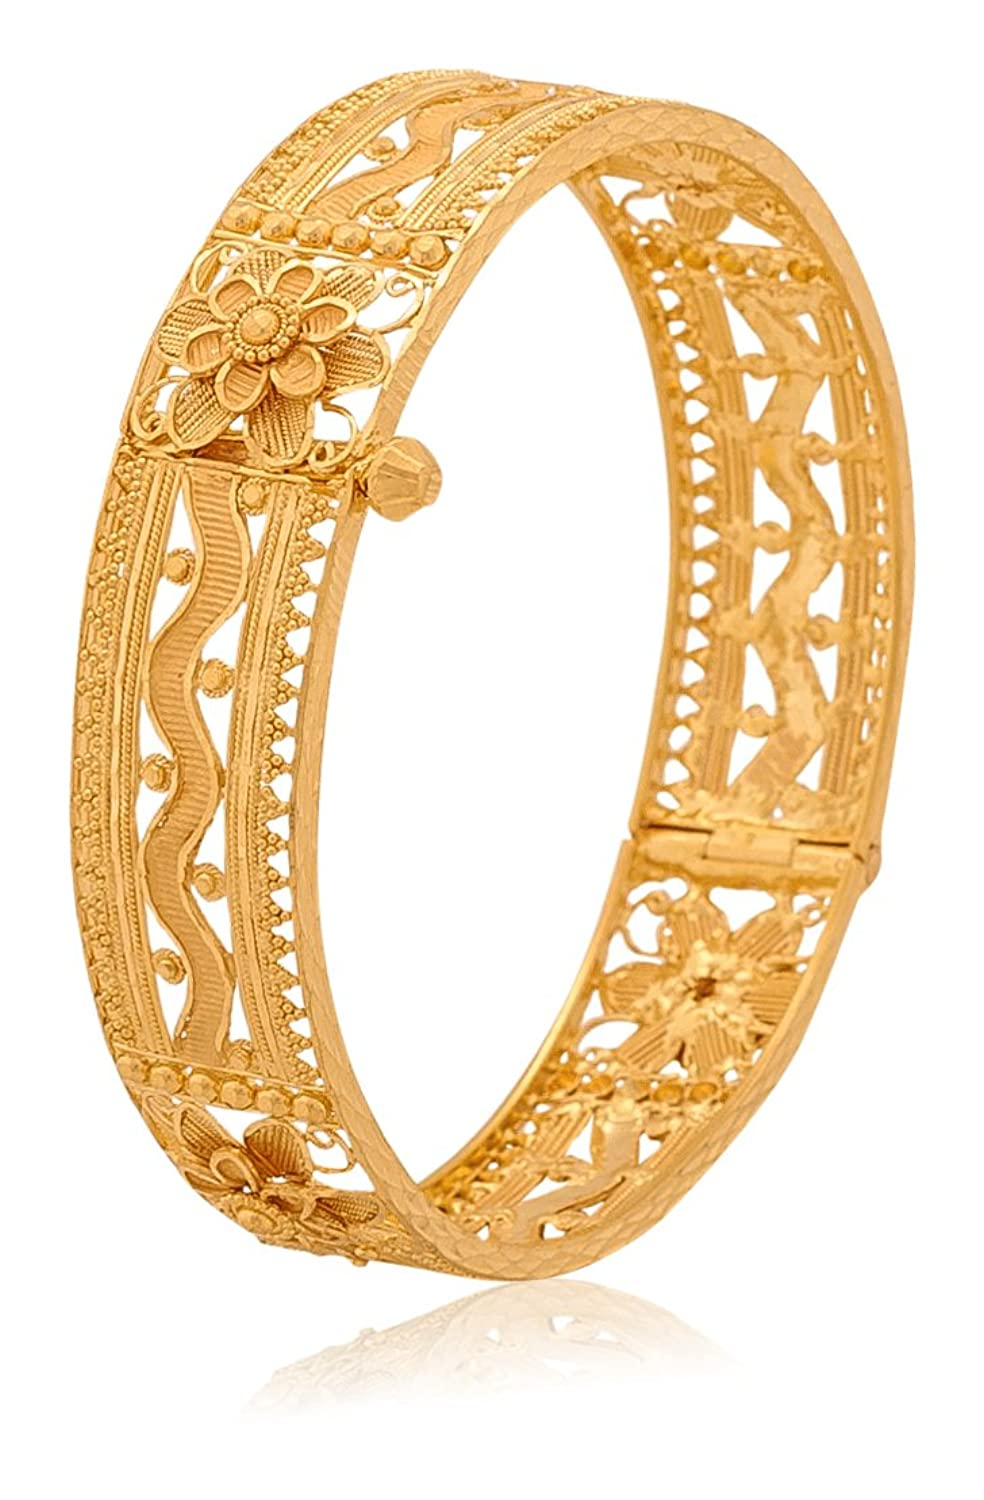 Buy Senco Gold Aura Collection 22k Yellow Gold Bangle Online at ...